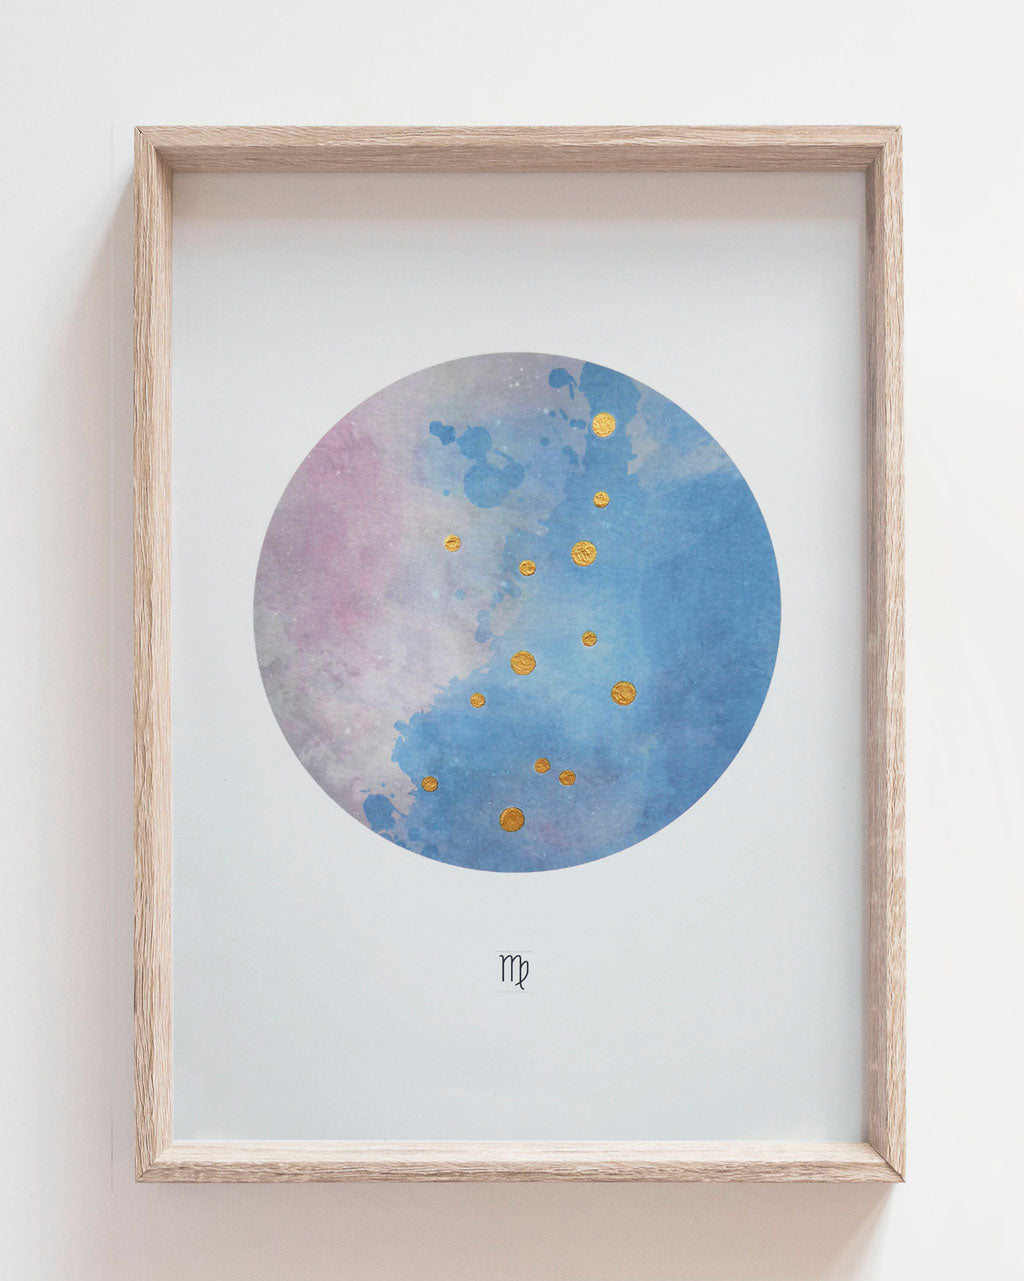 VIRGO Zodiac Constellation Art Print with Hand-Painted Gold Stars